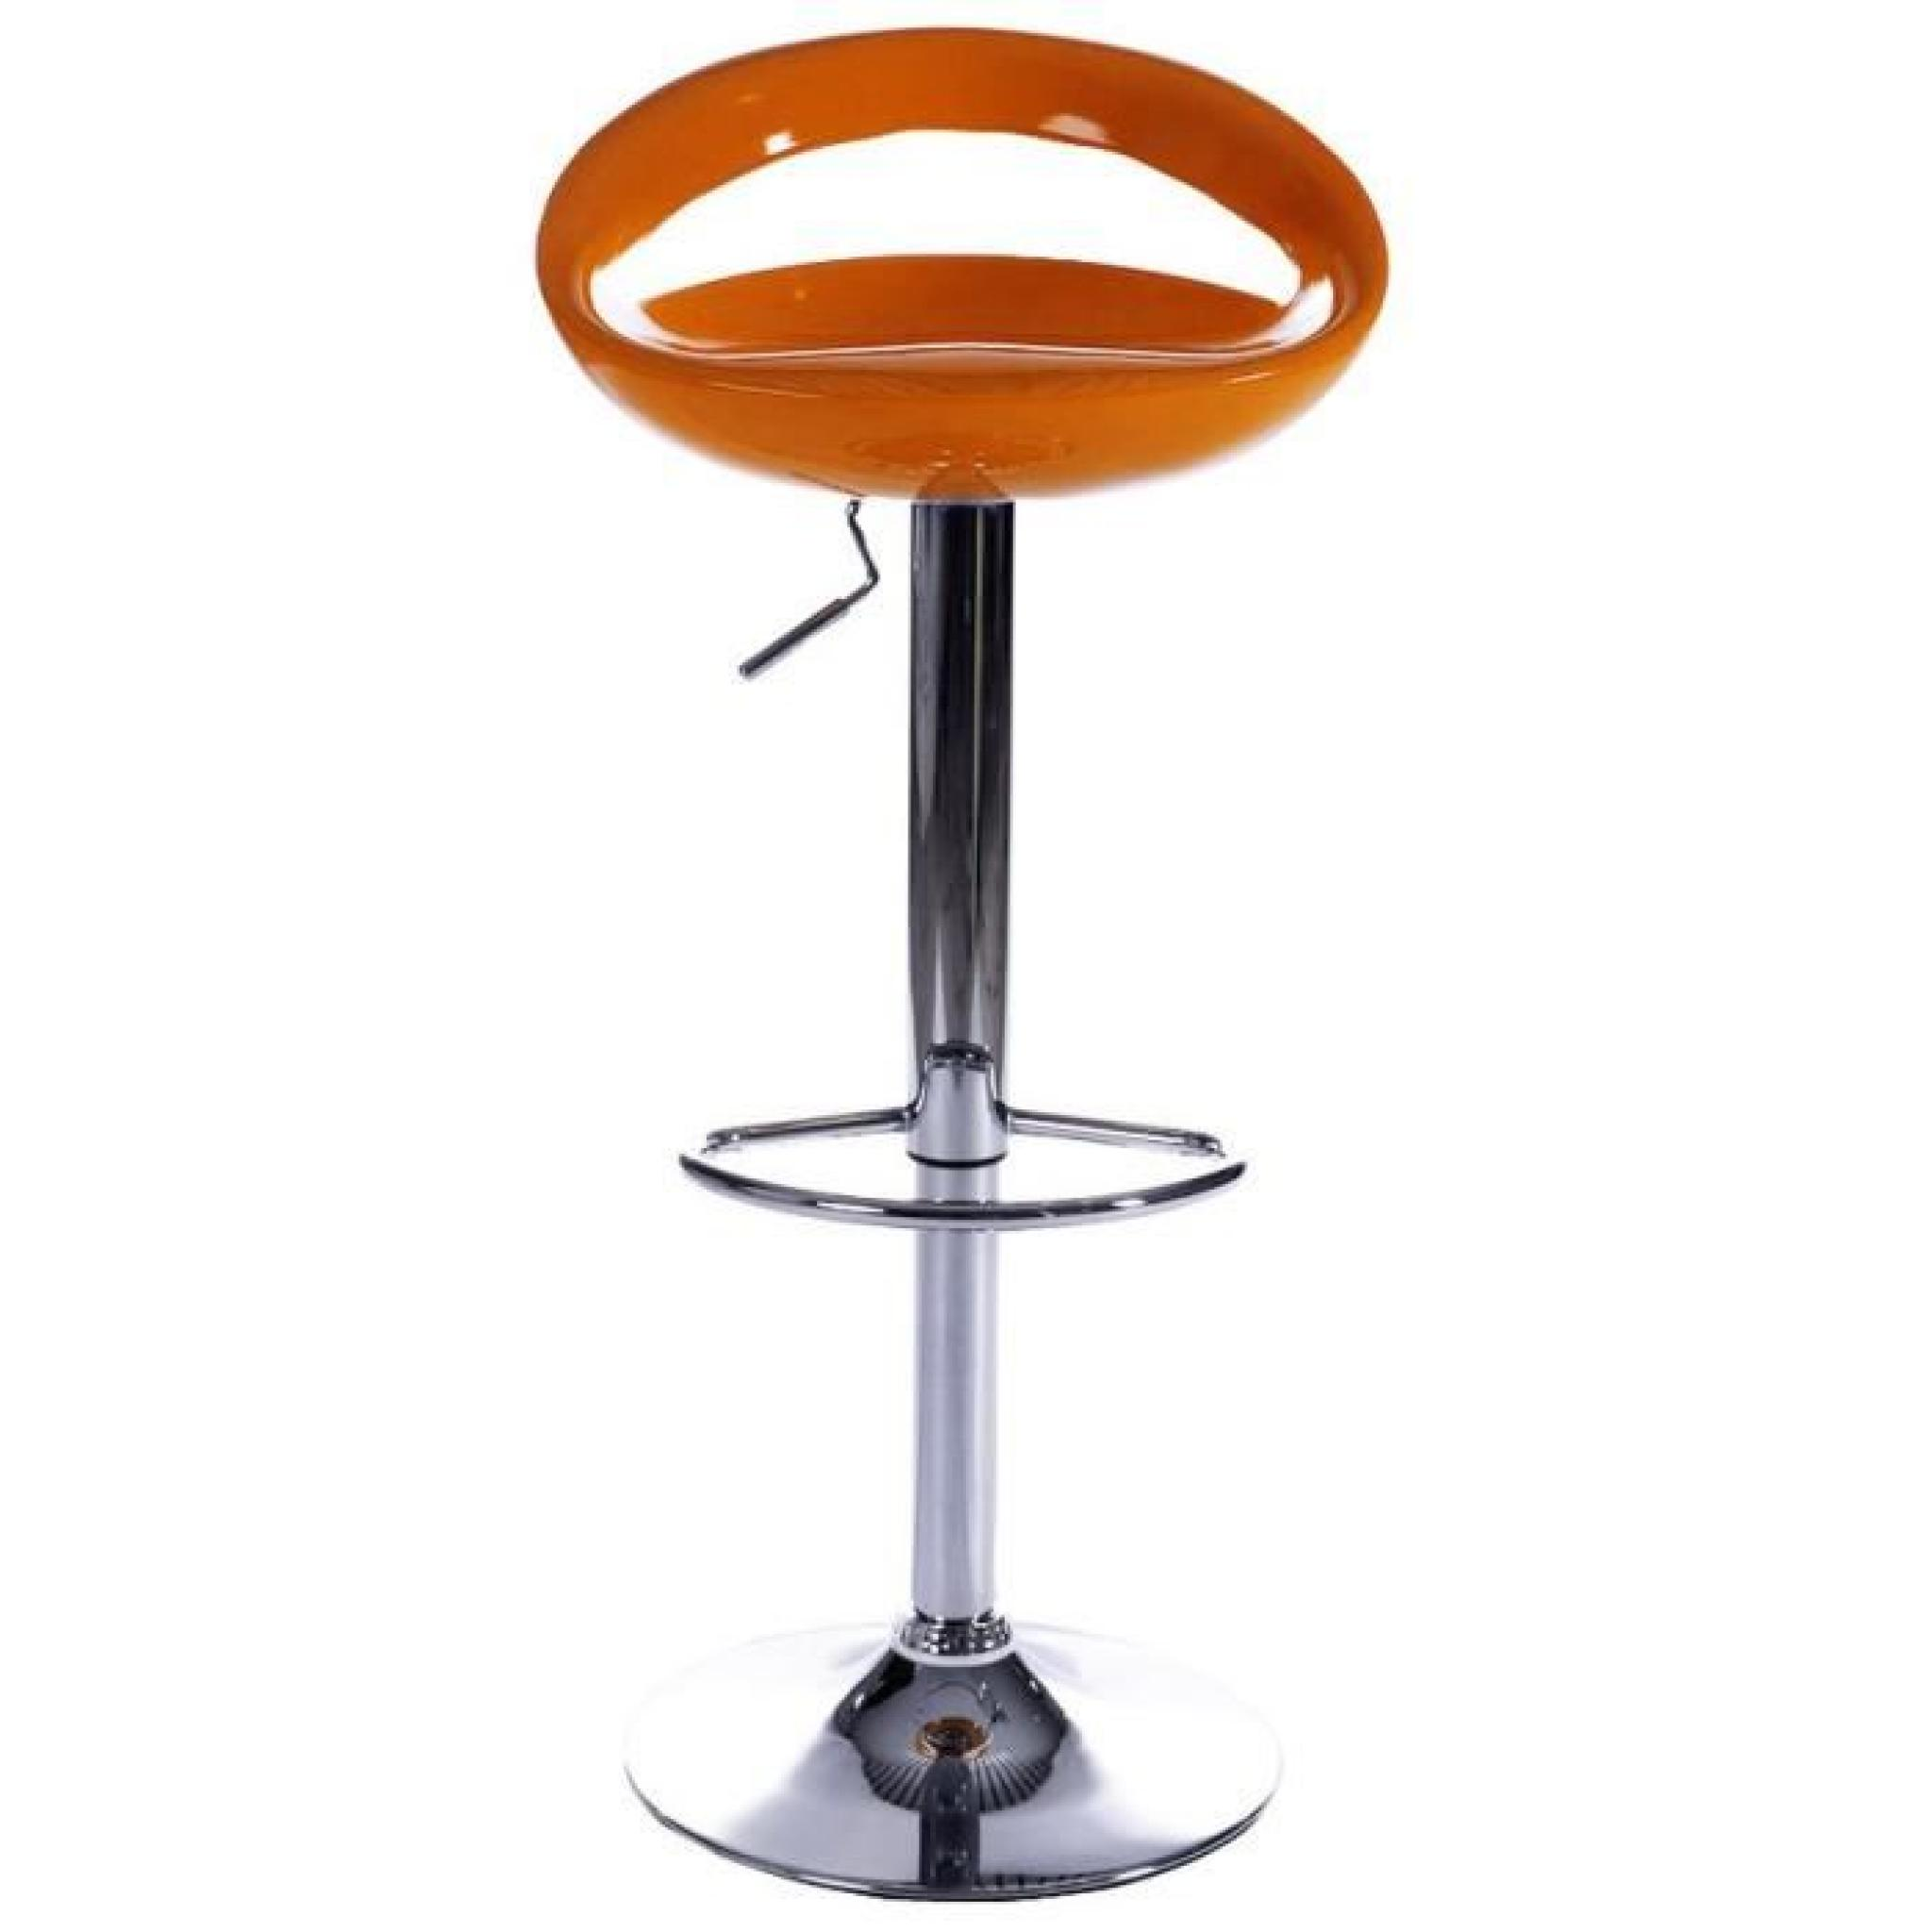 Tabouret Bar Moderne Tabourets De Bar Moderne Orange Comet Lot De 2 Achat